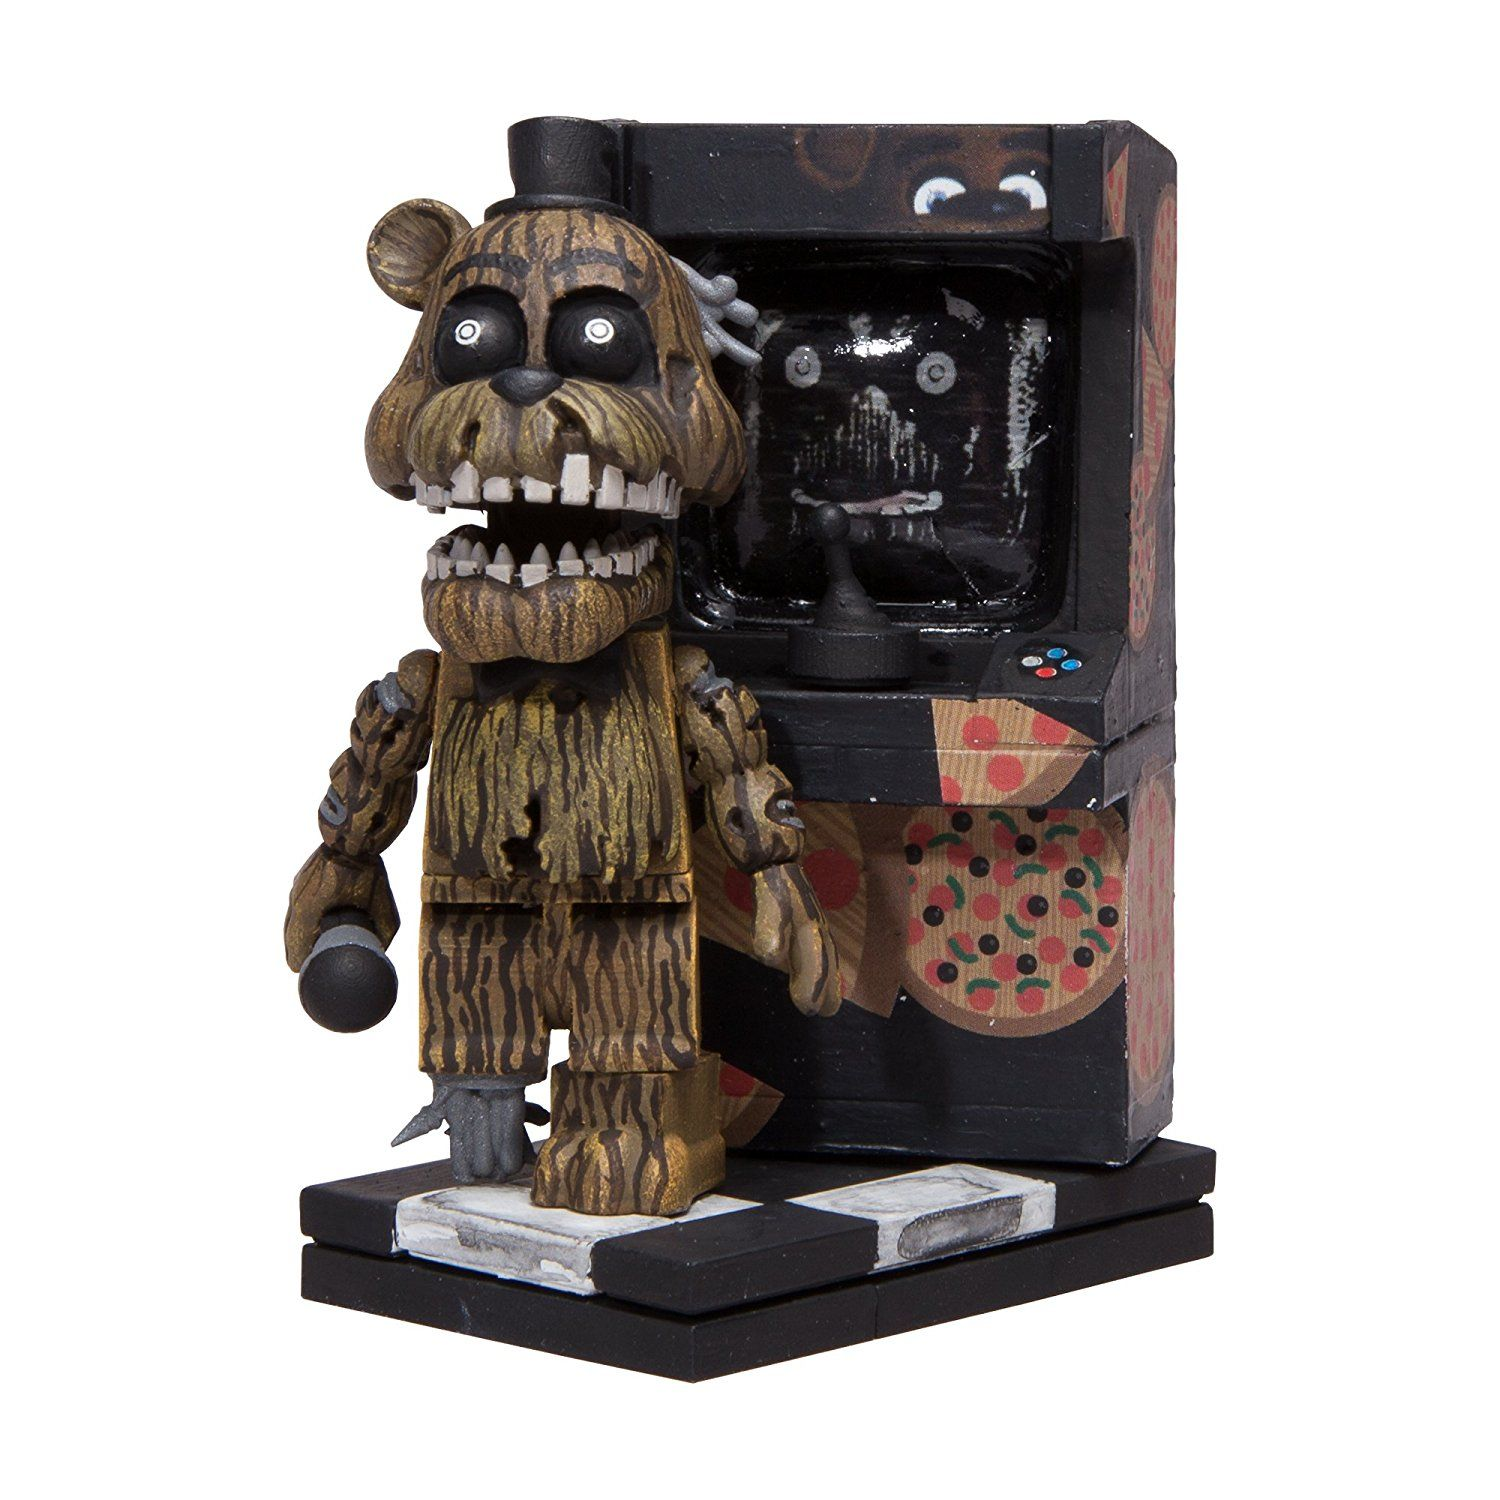 Amazon Com Mcfarlane Toys Five Nights At Freddy S Micro Arcade Cabinet Construction Set Toys Games Spielzeug Mach Dein Ding